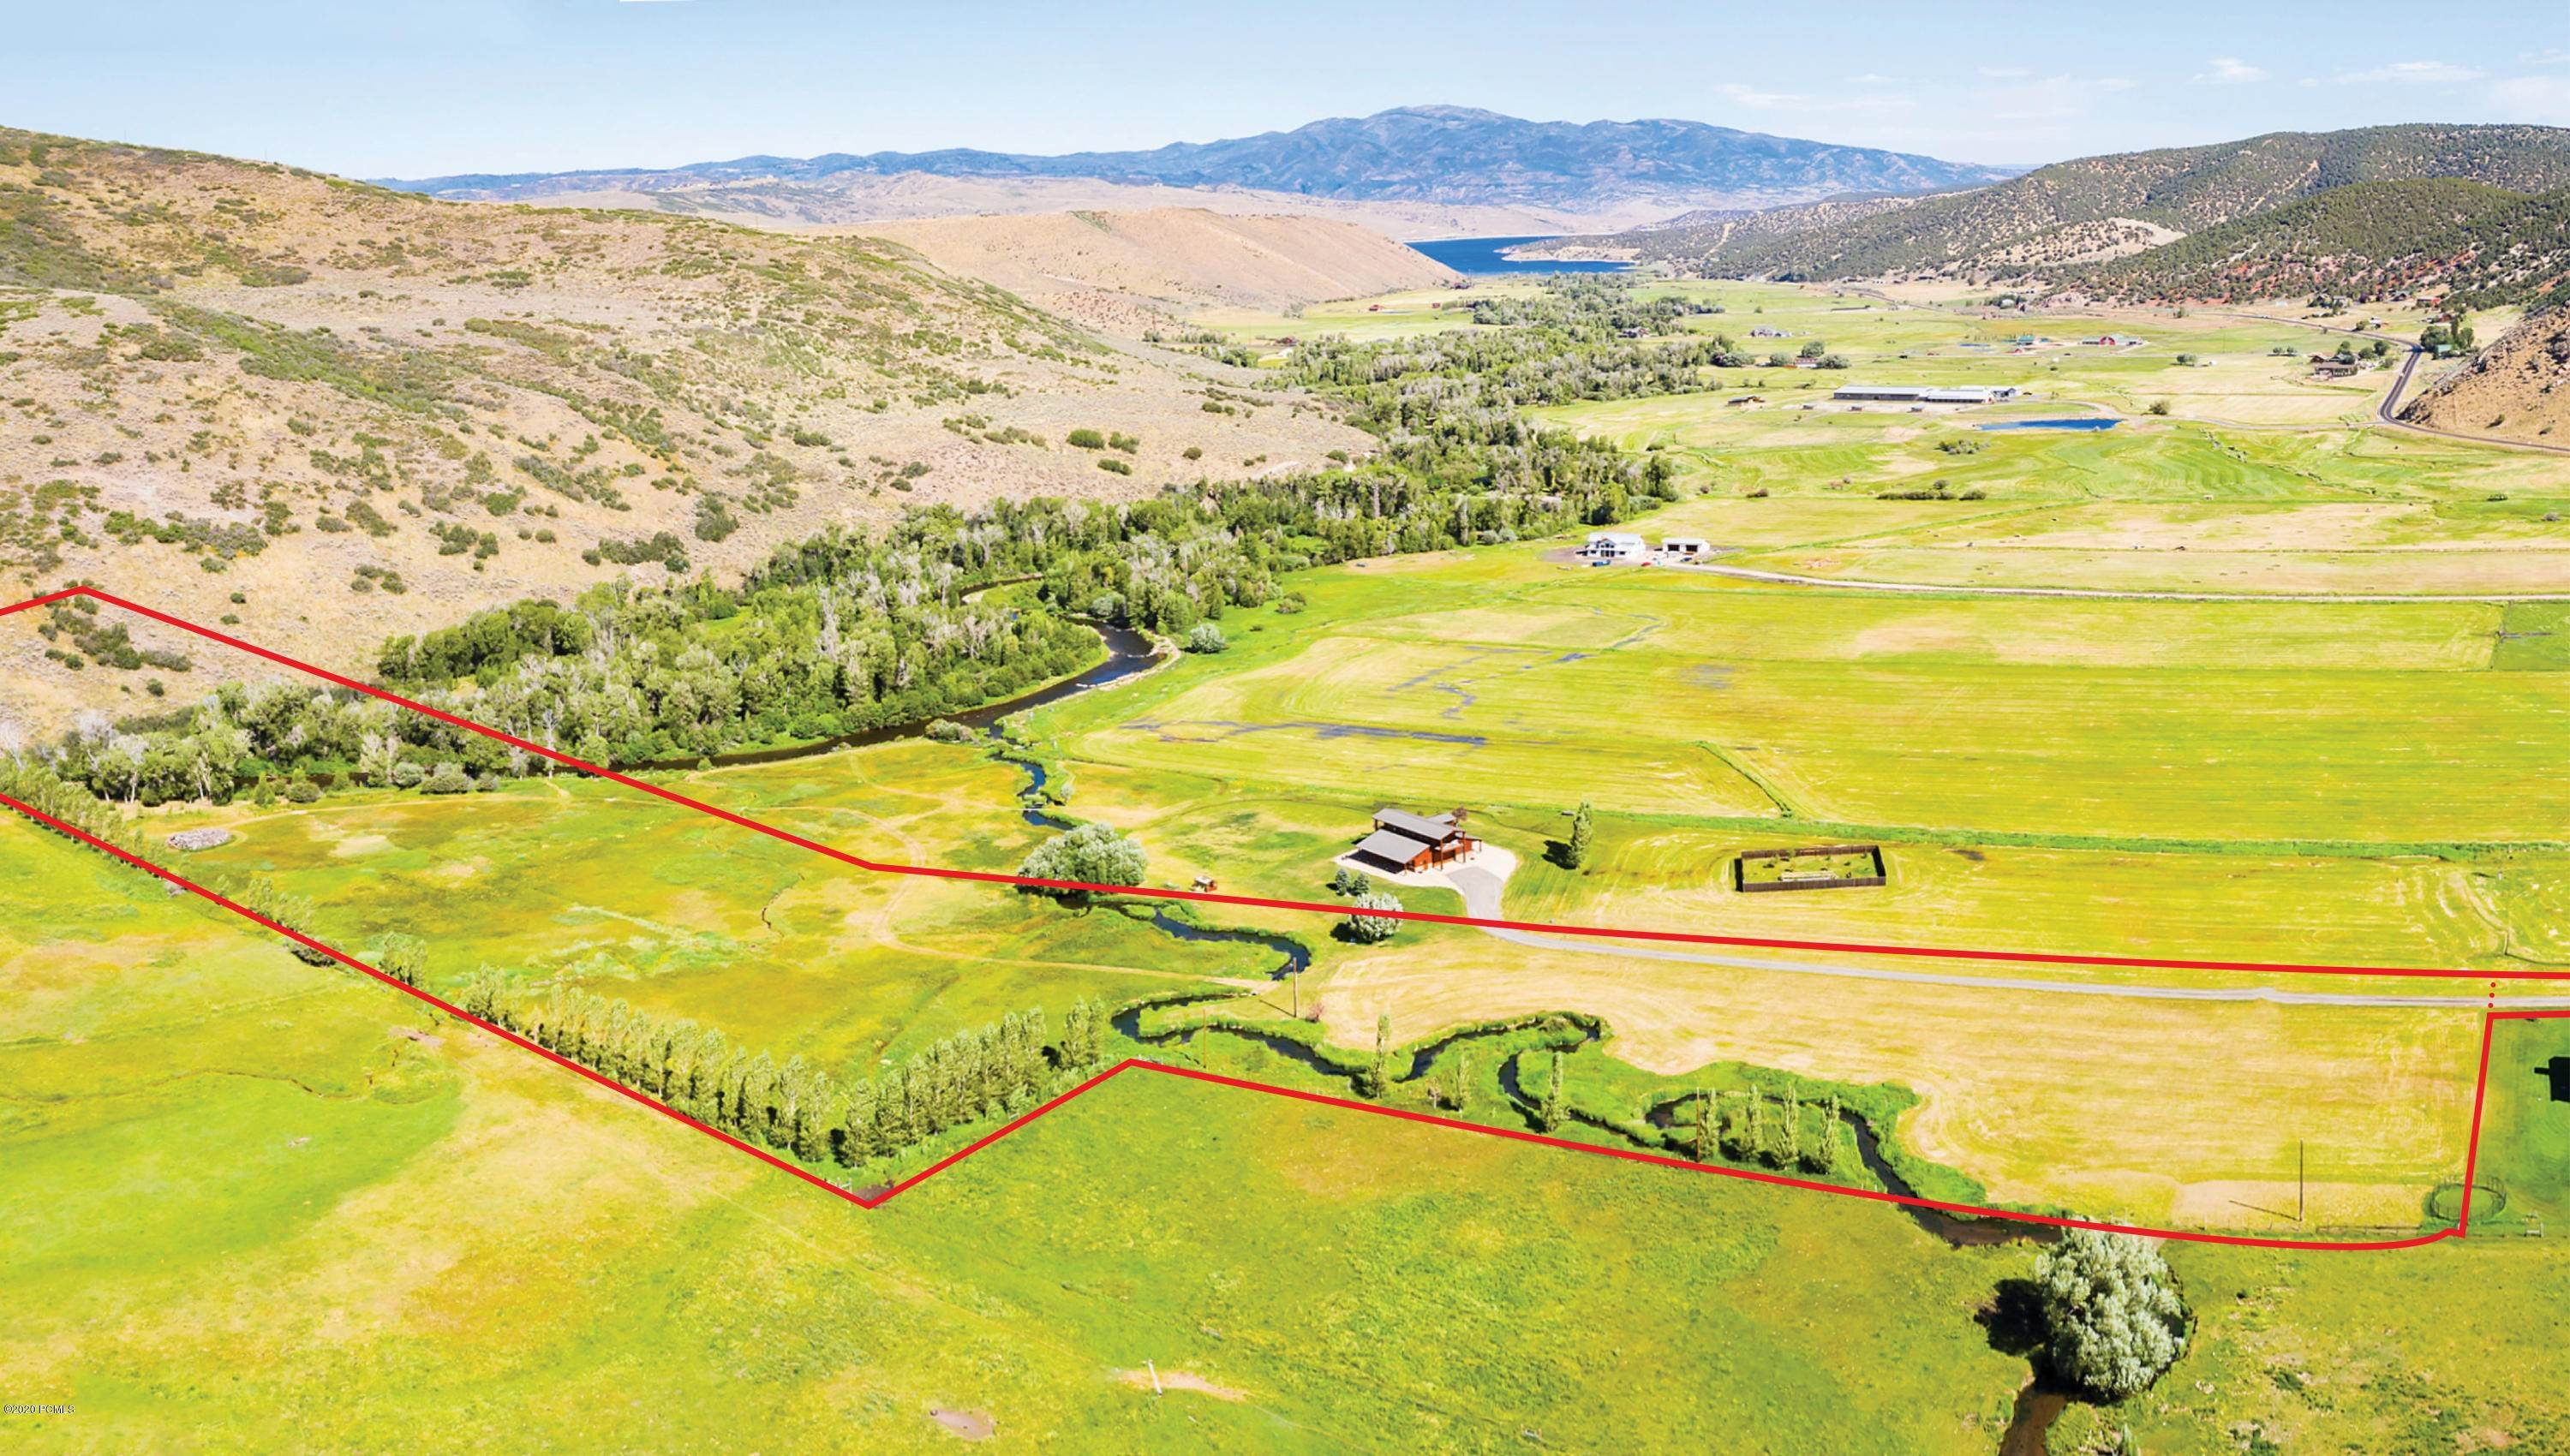 Agricultural Land for Sale at Peoa, Utah United States